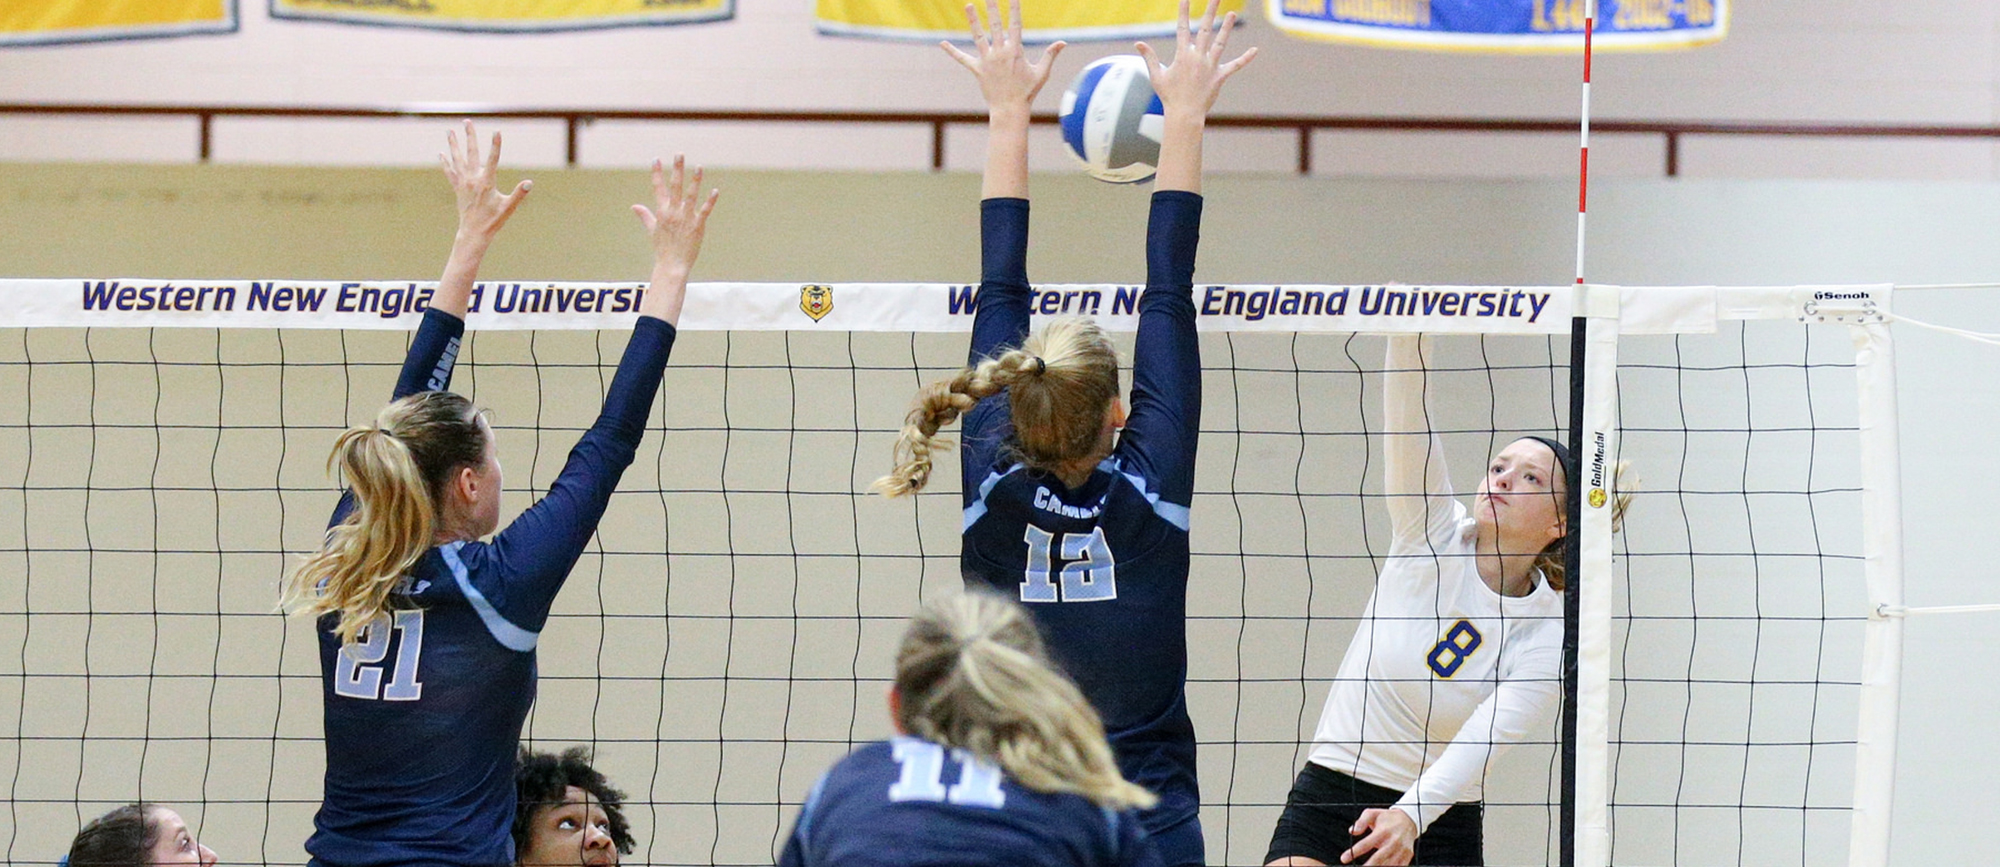 Junior Ashley Matthews posted a double-double with 16 kills and 17 digs in Western New England's 3-1 loss to Wentworth on Wednesday night. (Photo by Chris Marion)